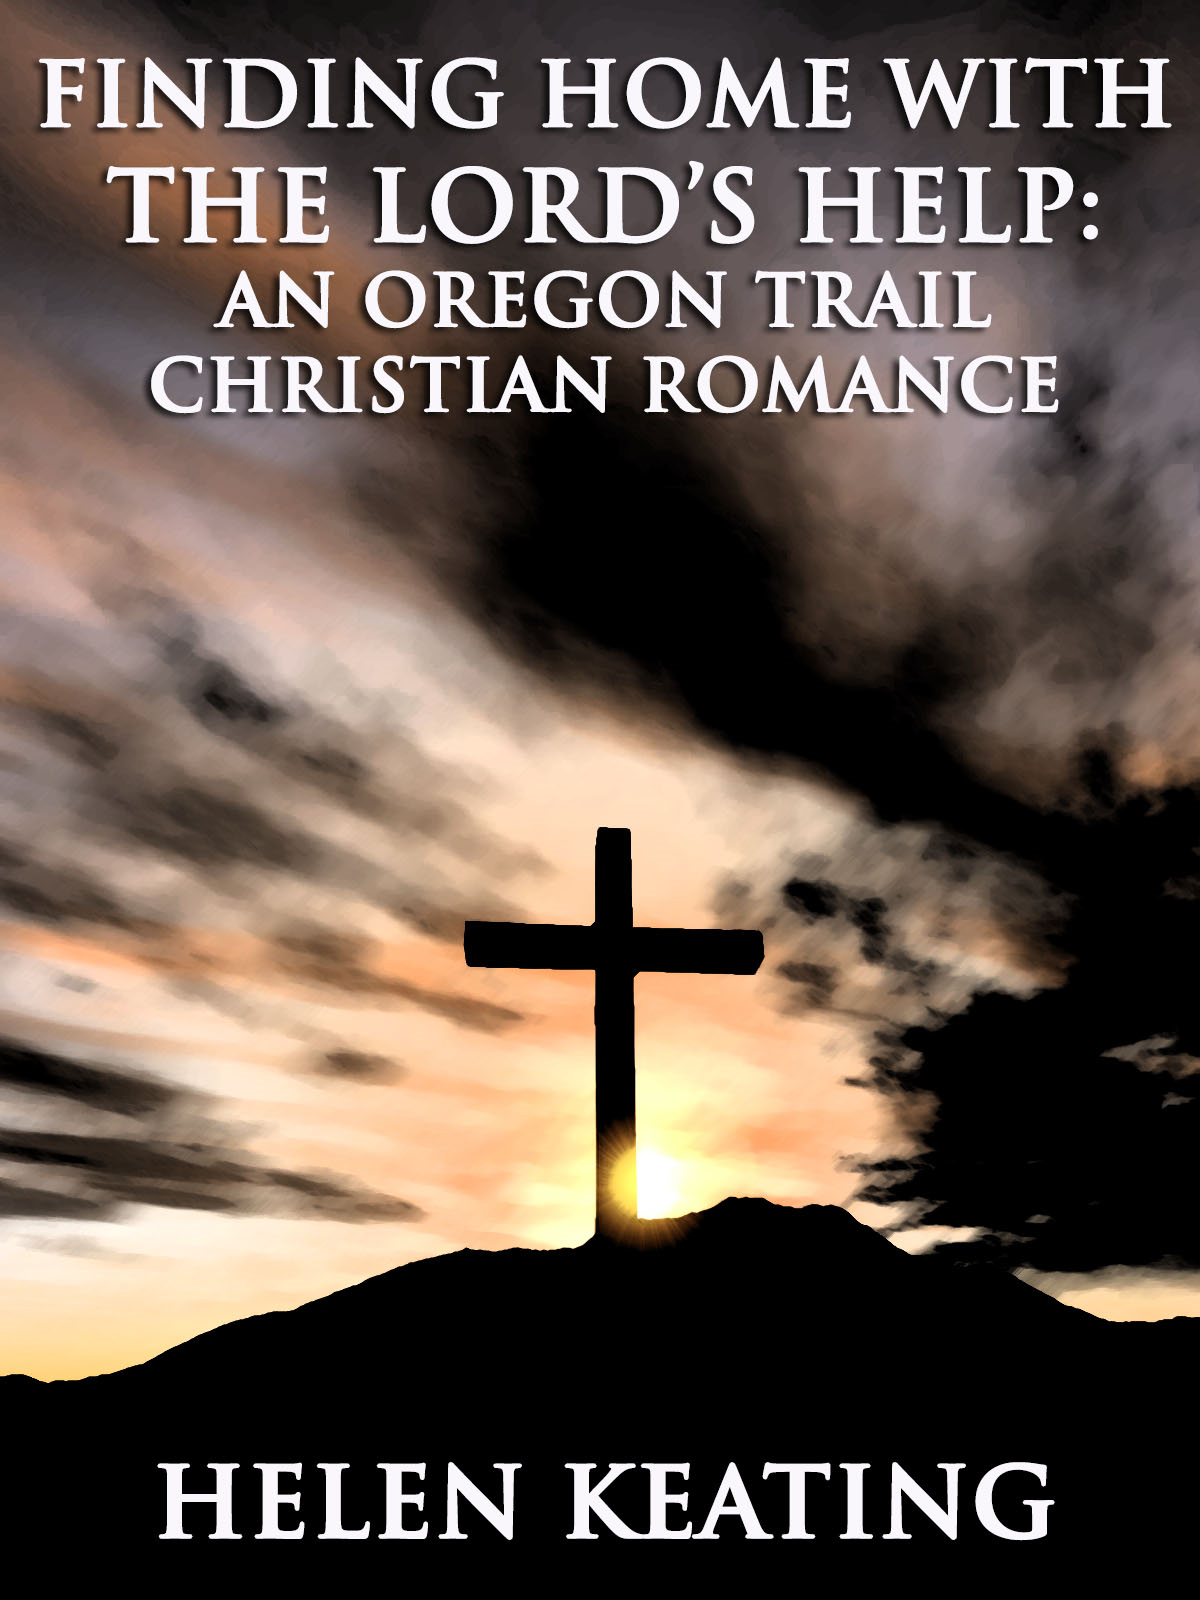 Finding Home With The Lords Help: An Oregon Trail Christian Romance Short Story